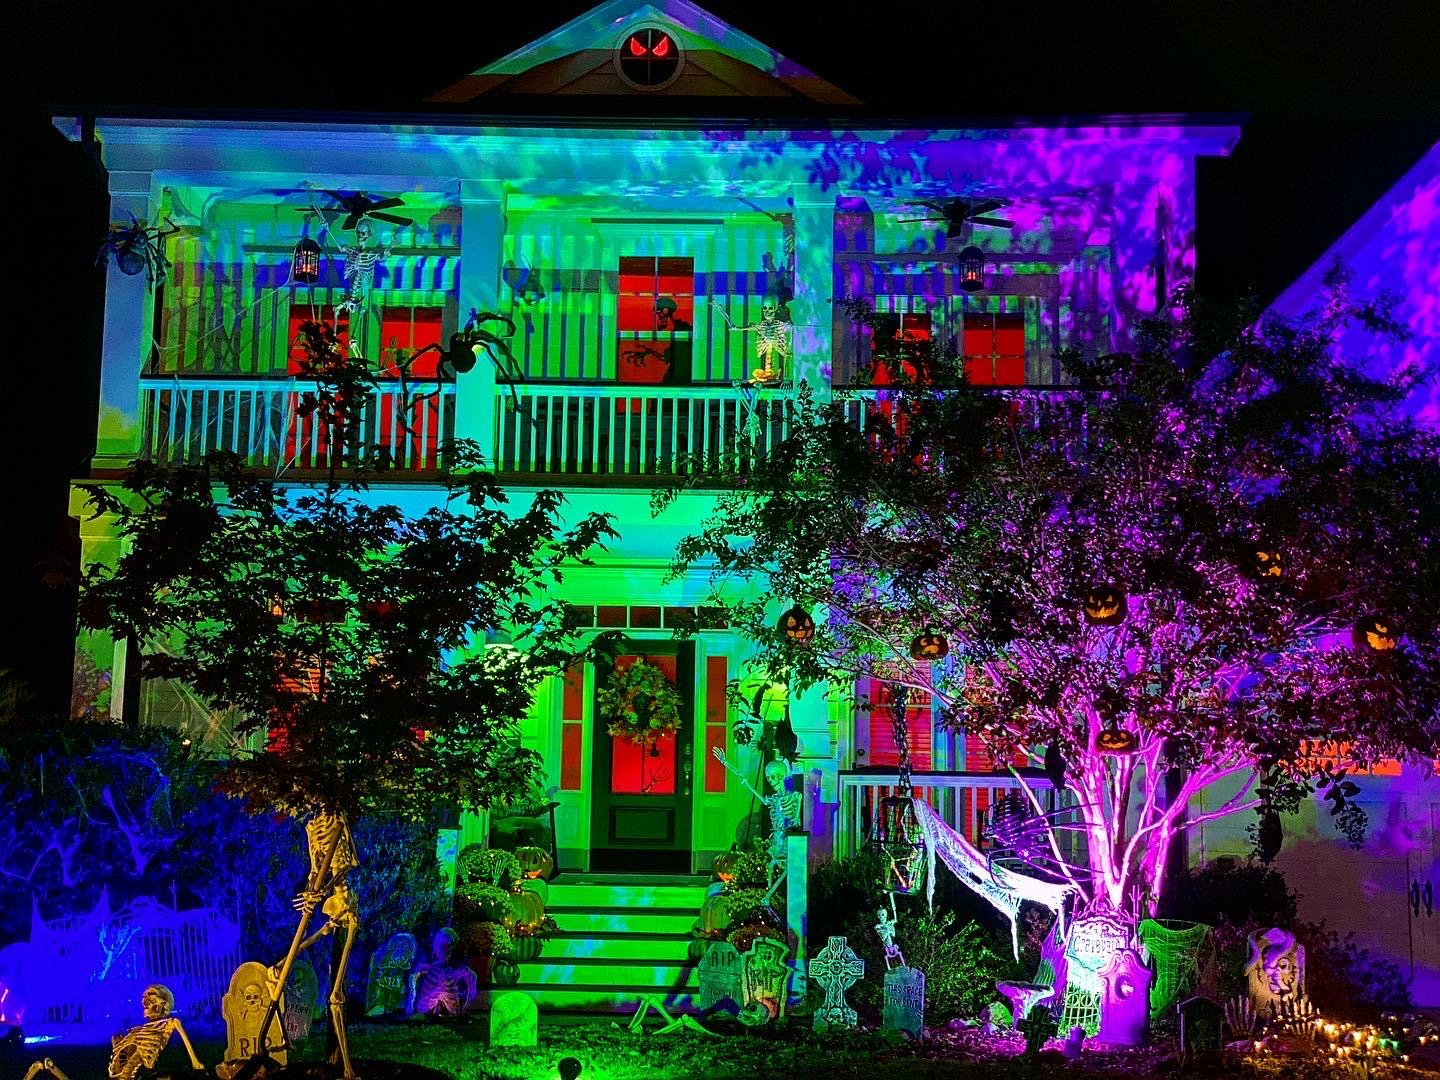 Images Of Homes Decorated For Halloween from wwwcache.wral.com